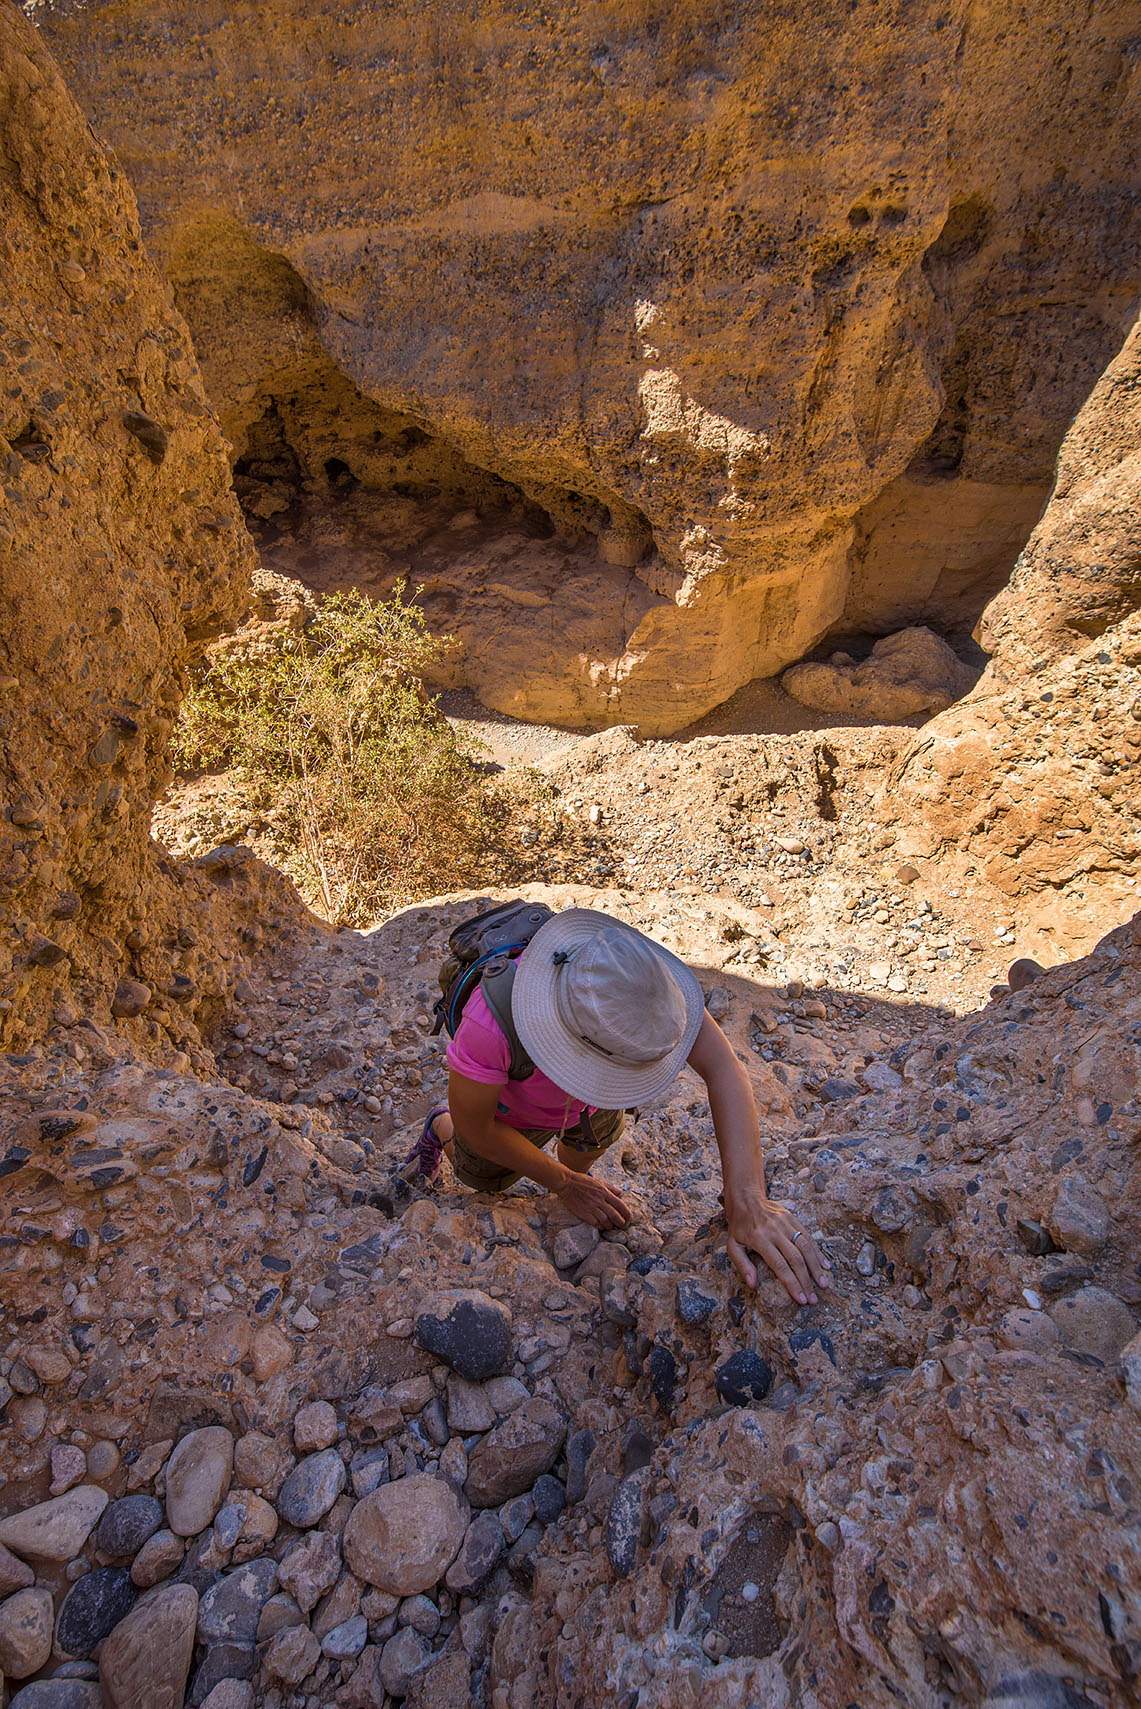 We ledged out when we were still about 20 feet off the canyon floor and had to climb back up.